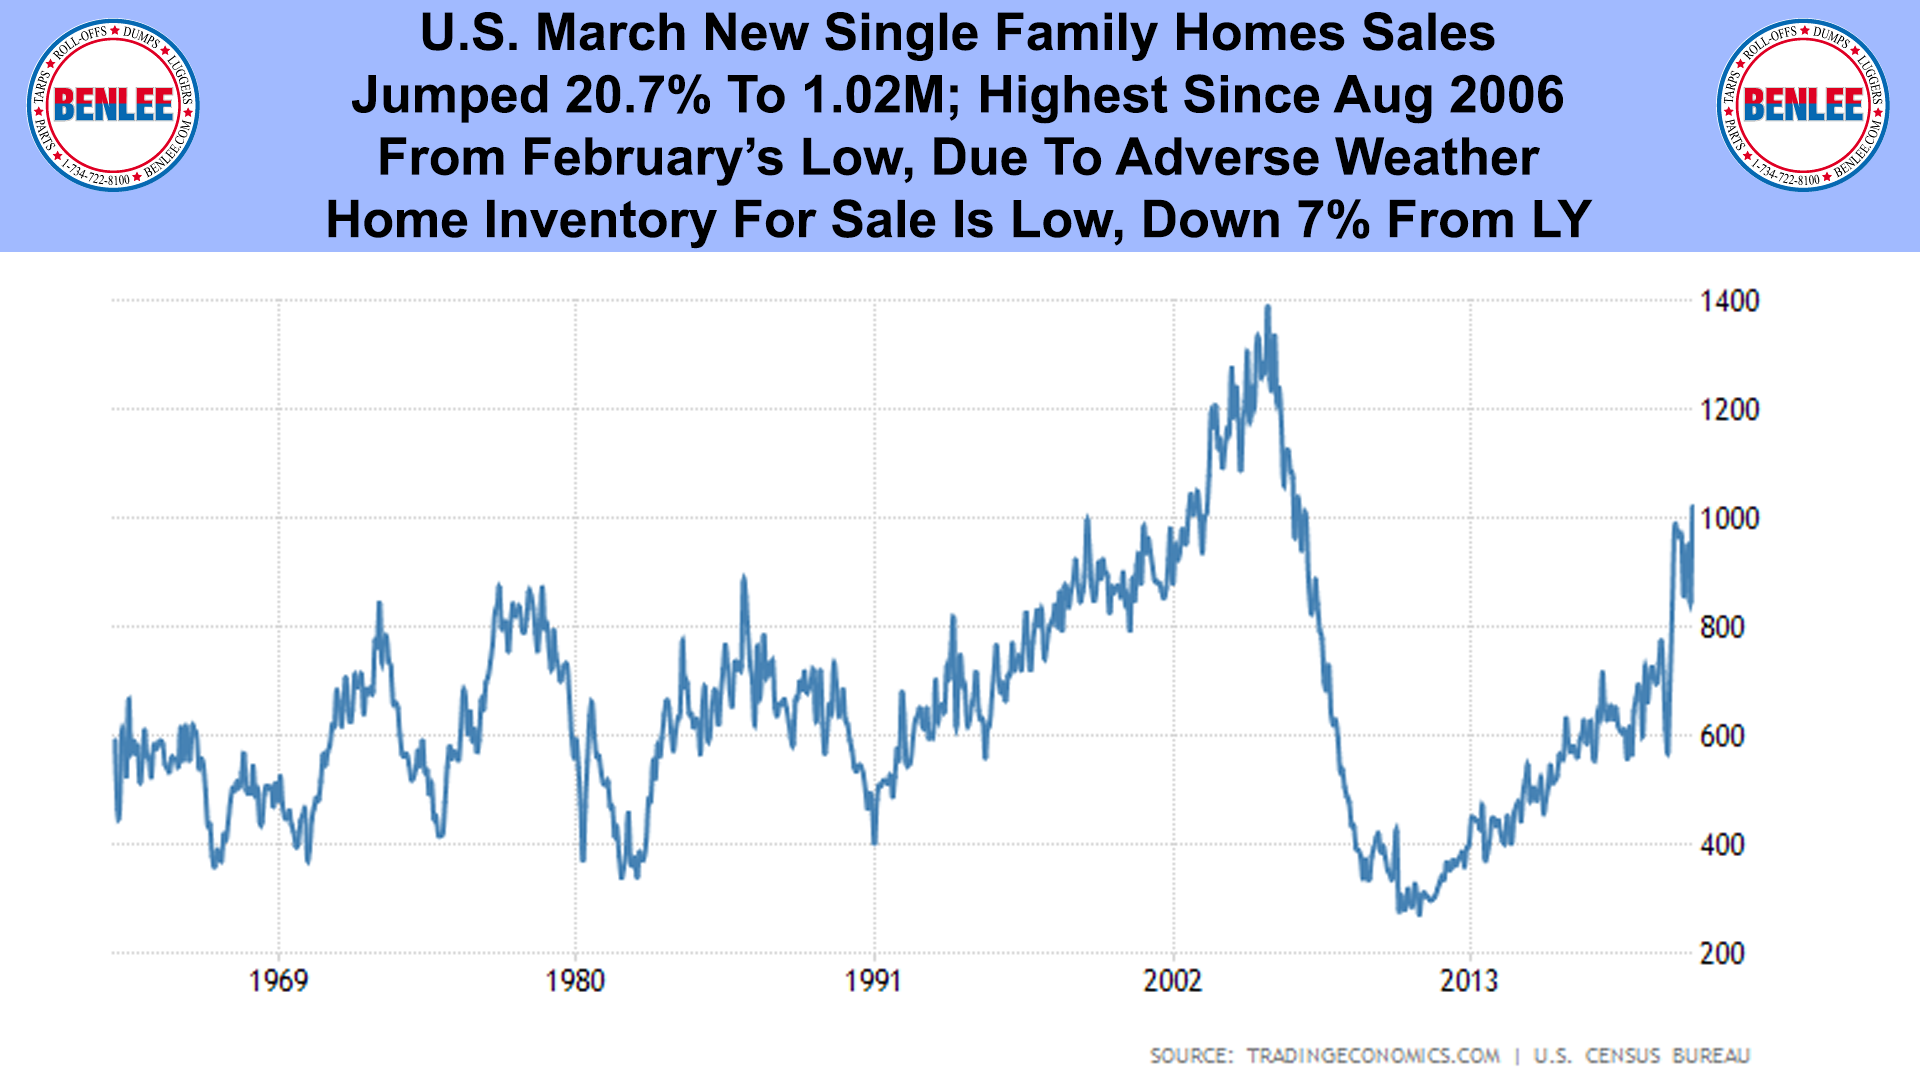 U.S. March New Single Family Homes Sales